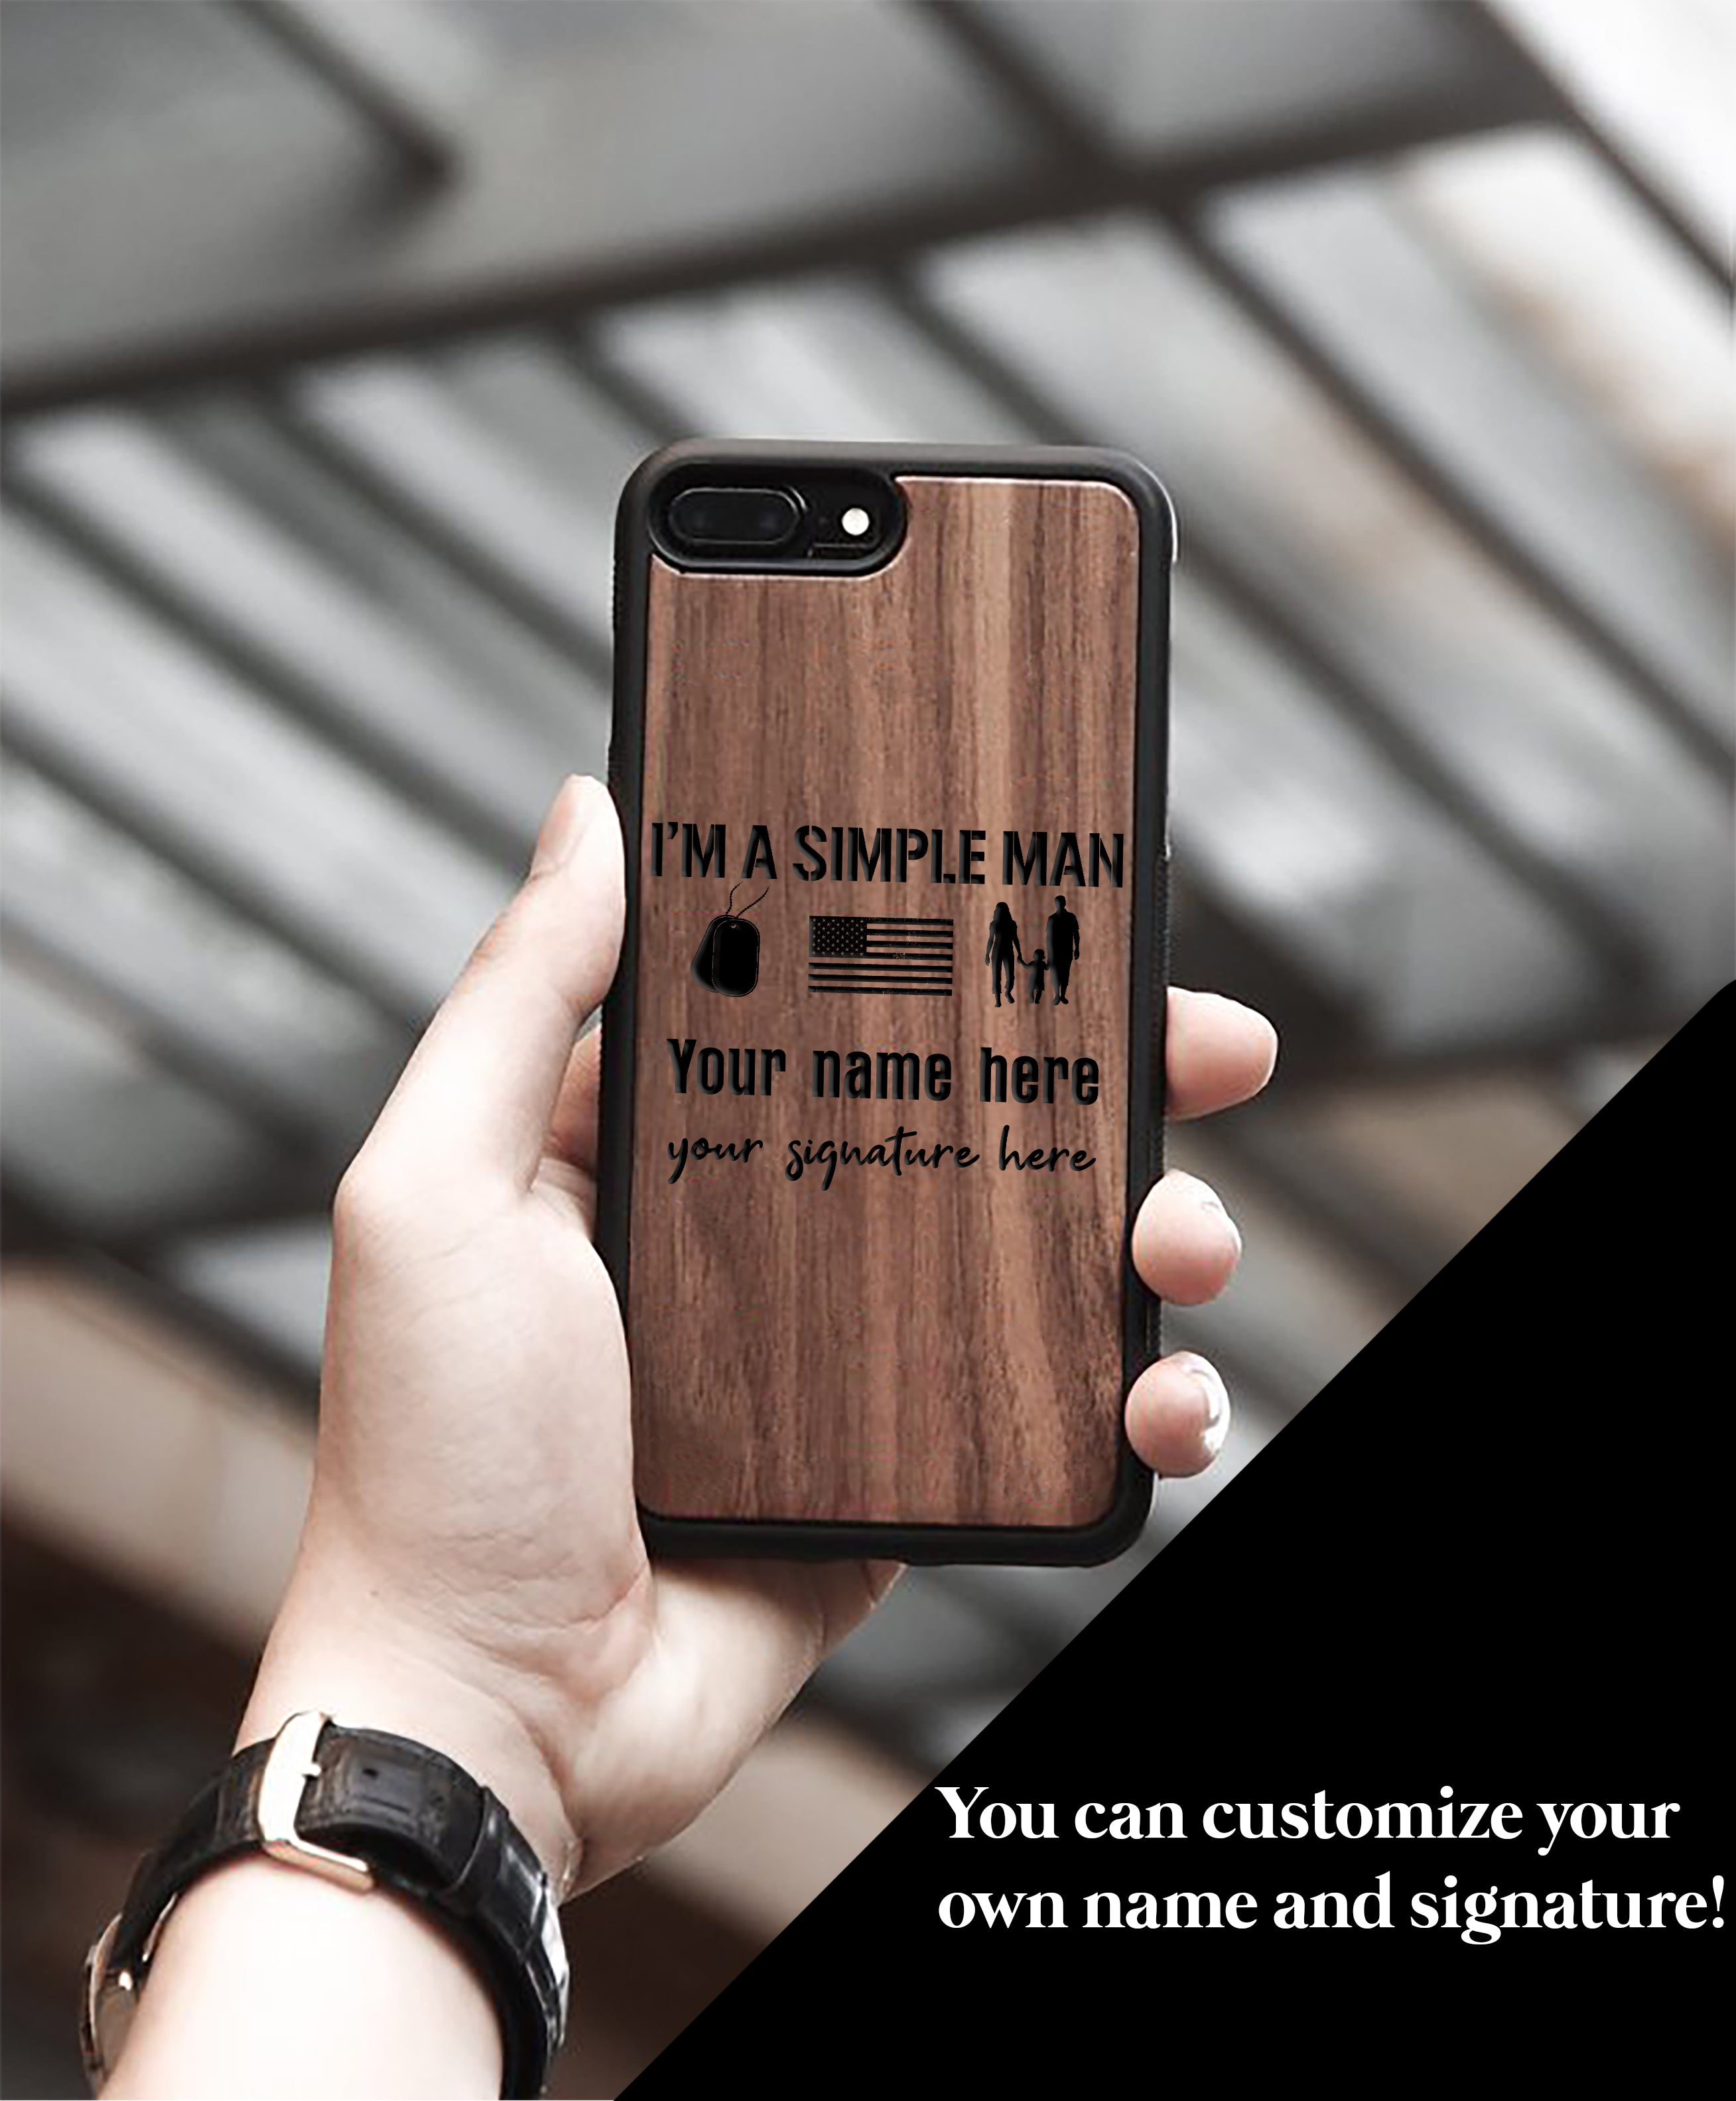 Miniwood -  I'm a simple man IPhone Case